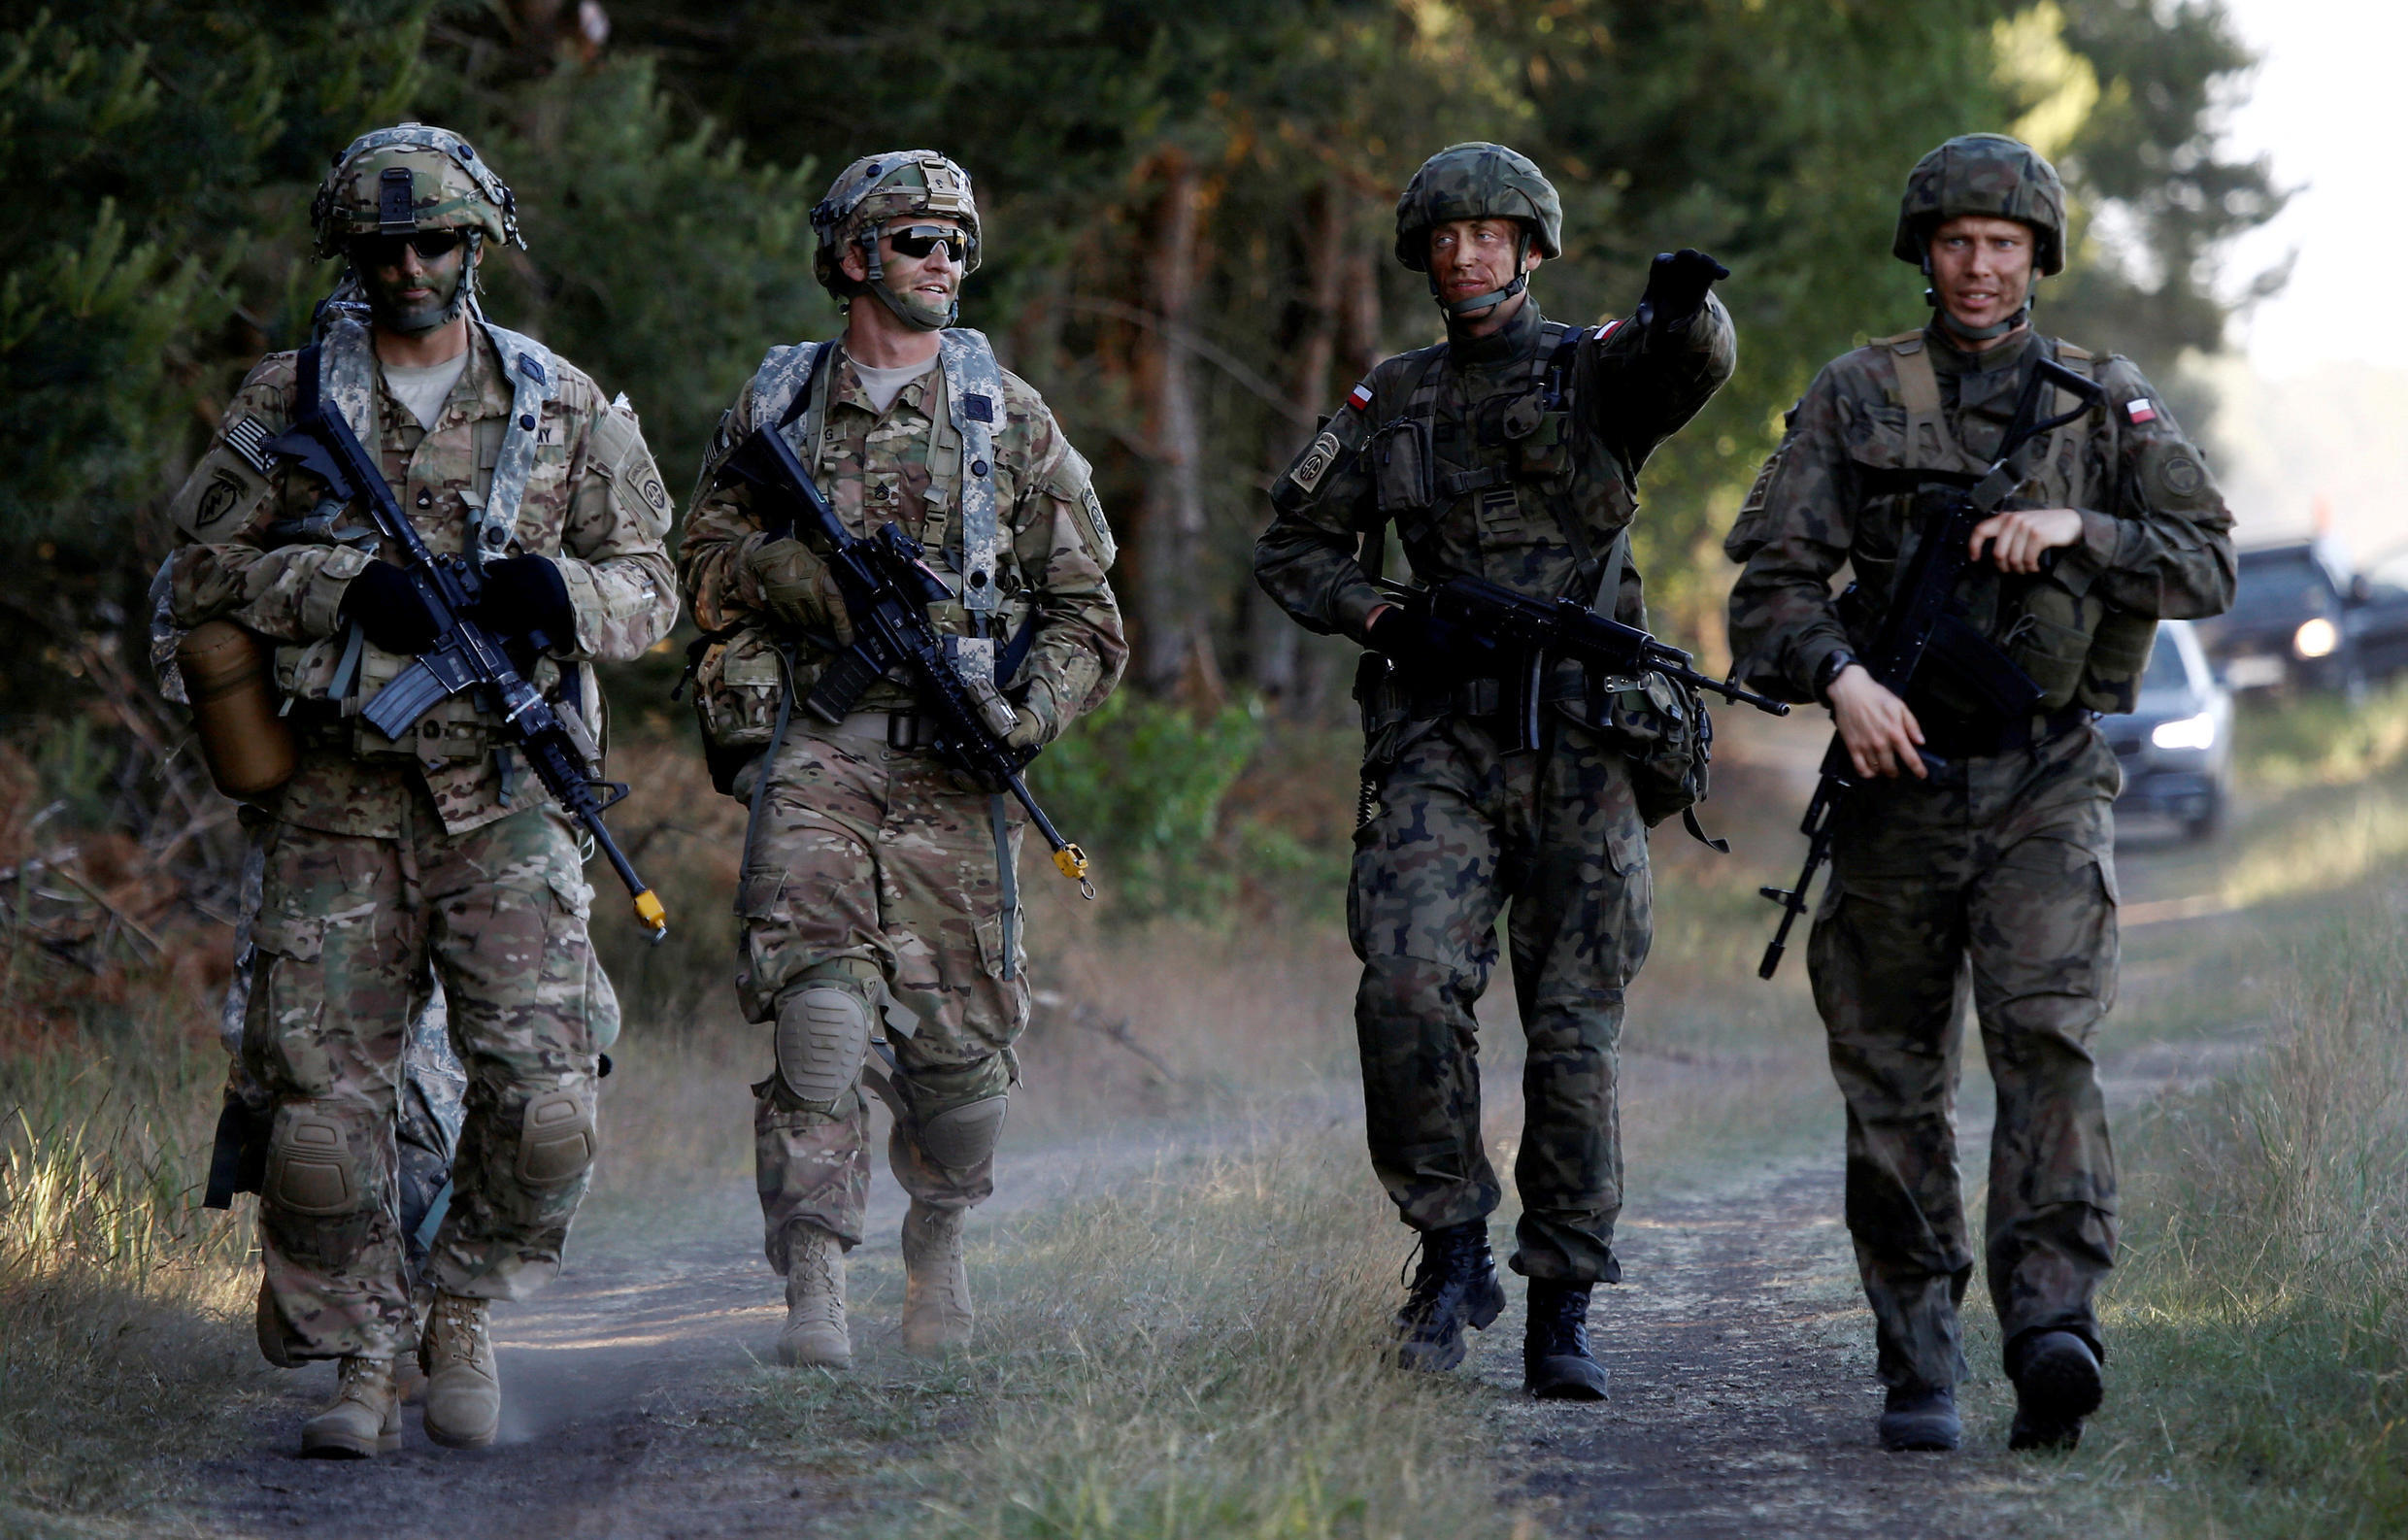 Poland's 6th Airborne Brigade soldiers (R) walk with U.S. 82nd Airborne Division soldiers during the NATO allies' Anakonda 16 exercise near Torun, Poland, June 7, 2016.